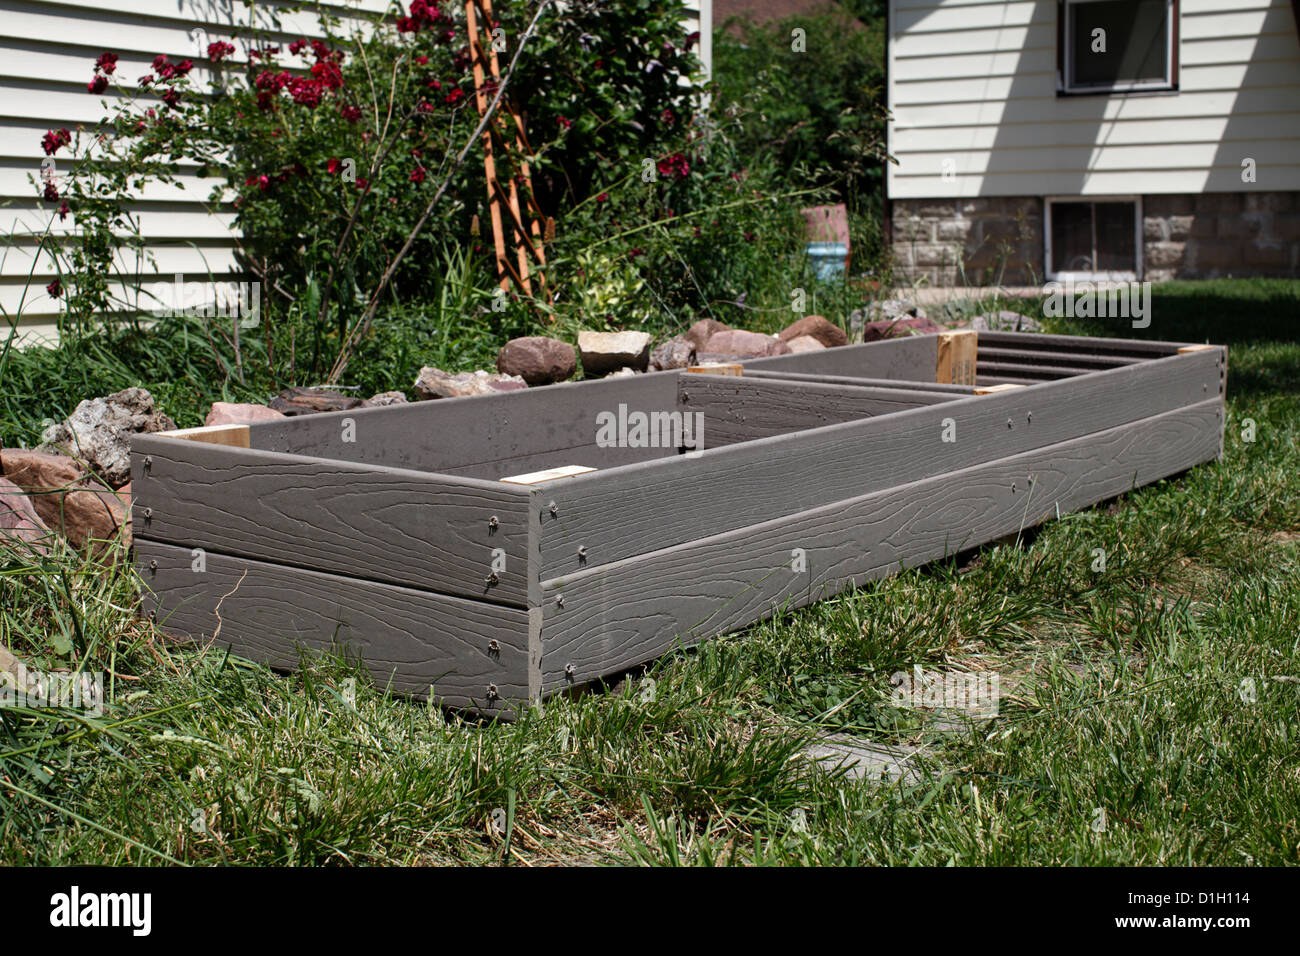 Raised Bed Diy Stock Photos Raised Bed Diy Stock Images